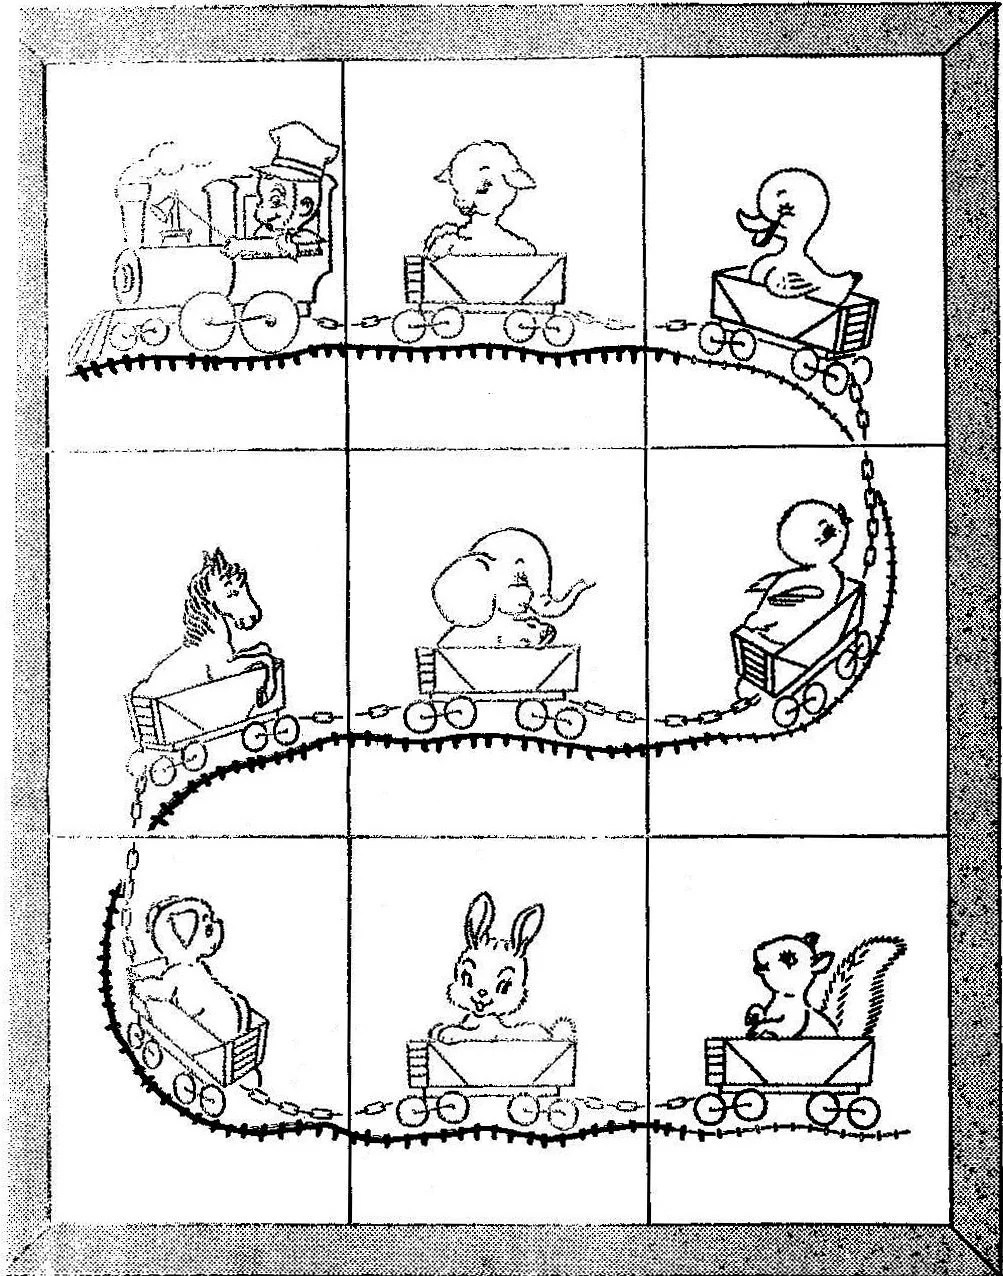 Train Crib Quilt Vintage Embroidery Pattern 521 for Baby 32x41